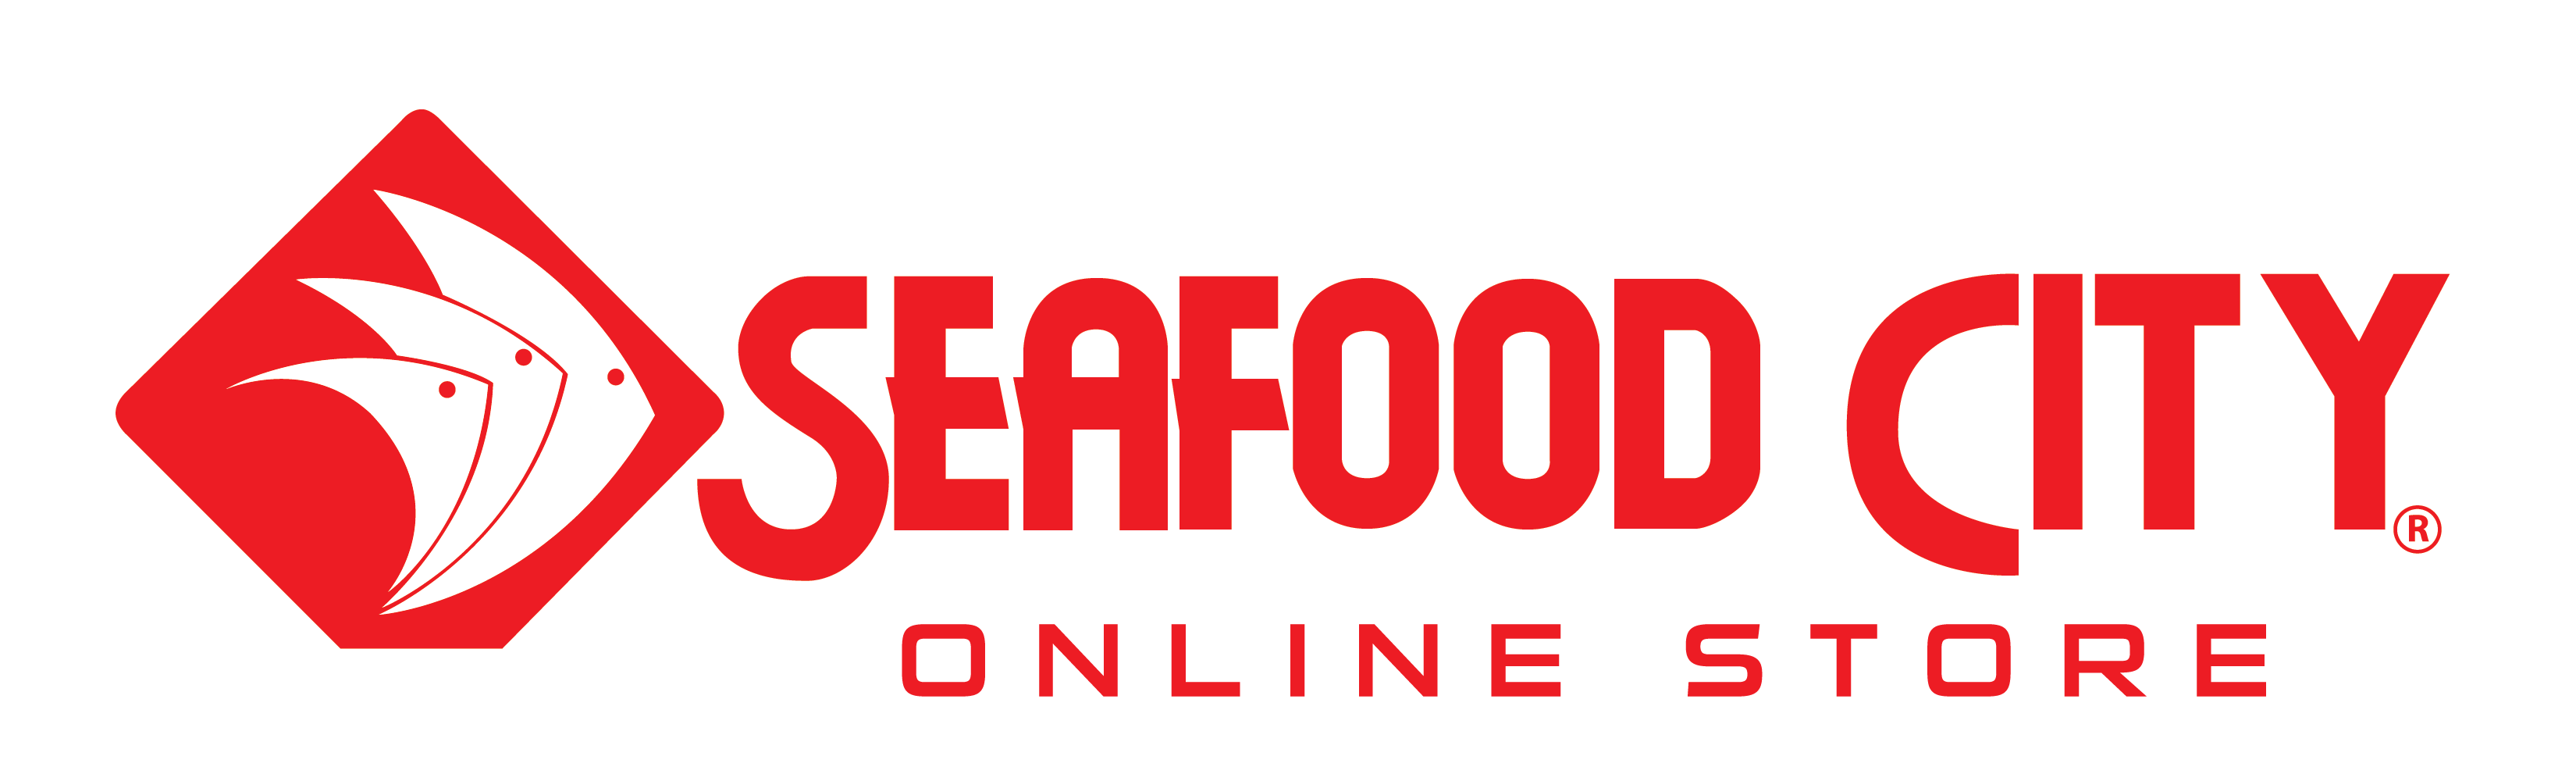 Seafood City Supermarket North Las Vegas